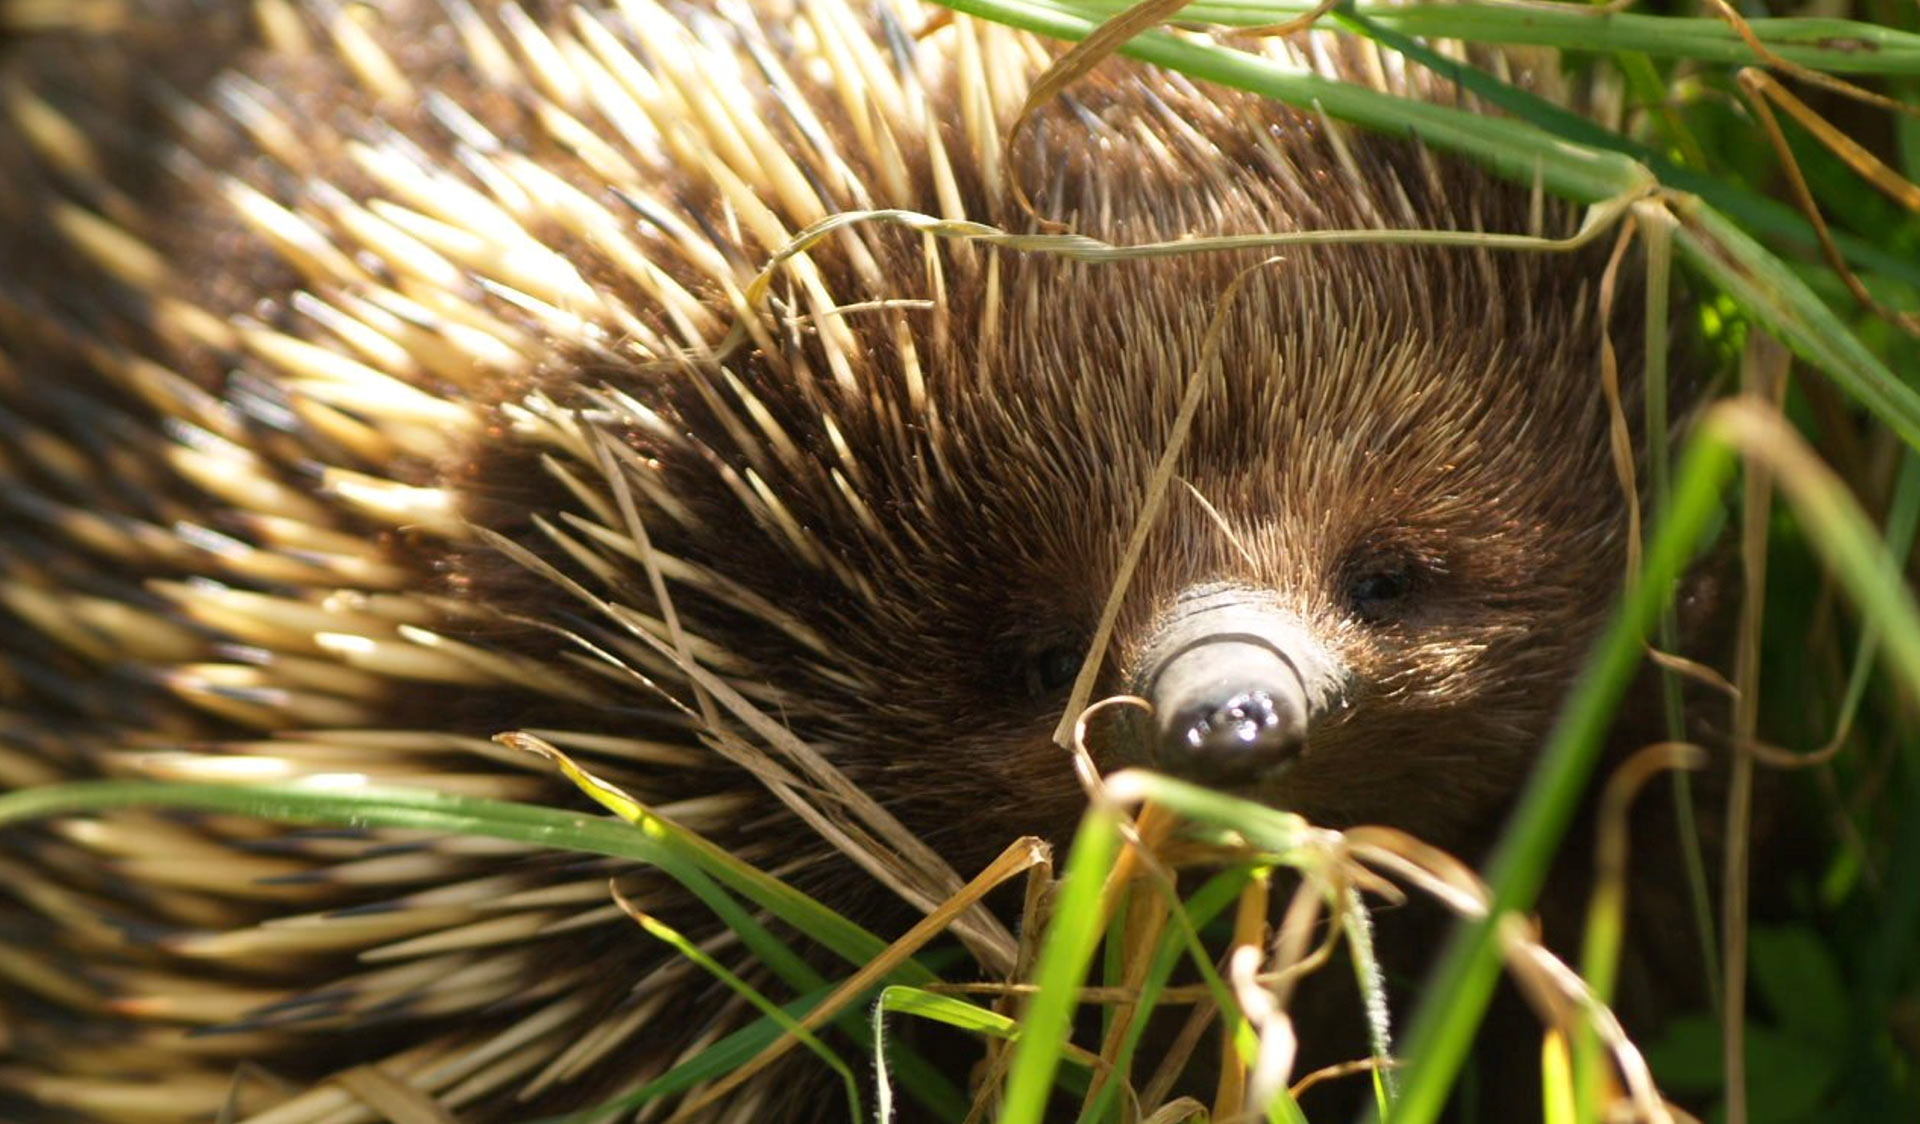 An echidna in the grass.